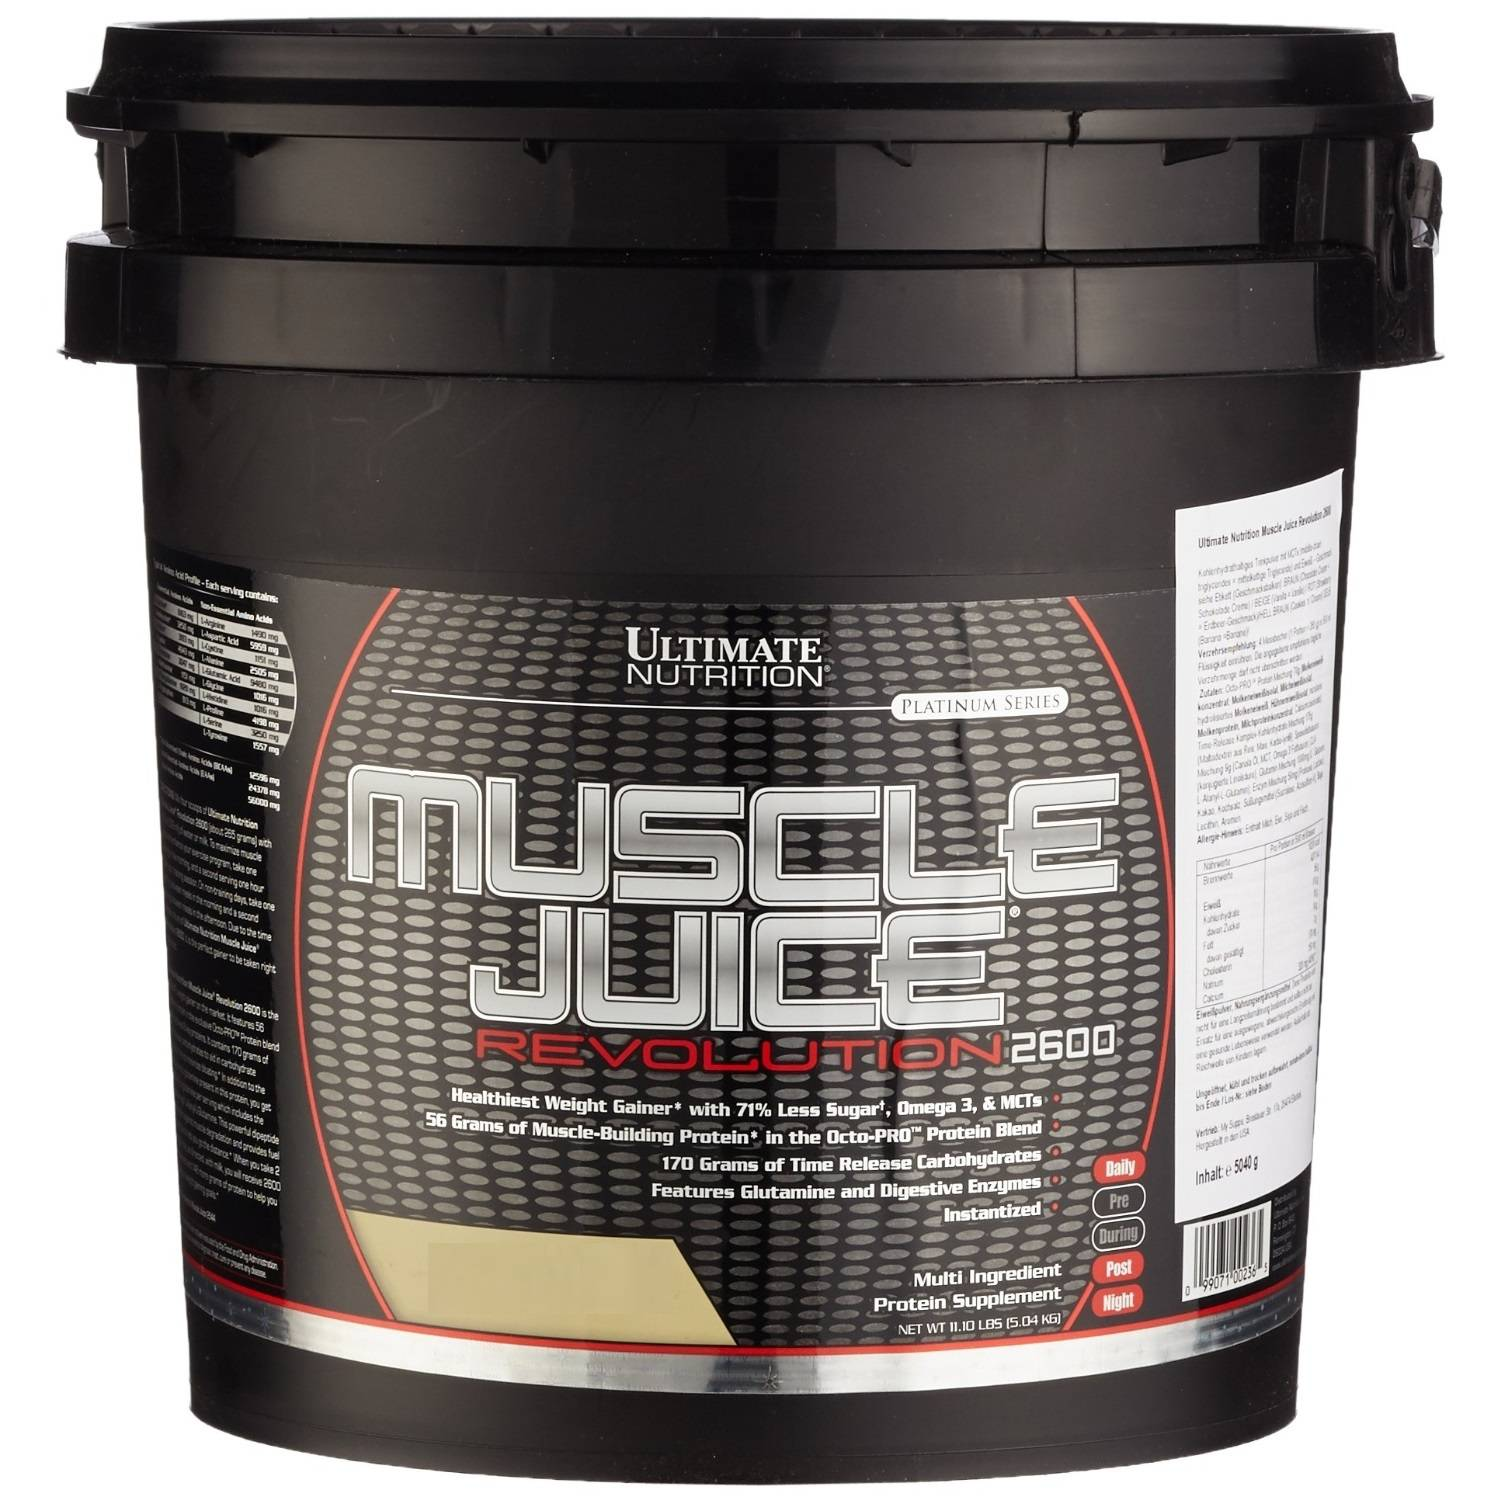 Muscle juice revolution 2600 (ultimate nutrition)